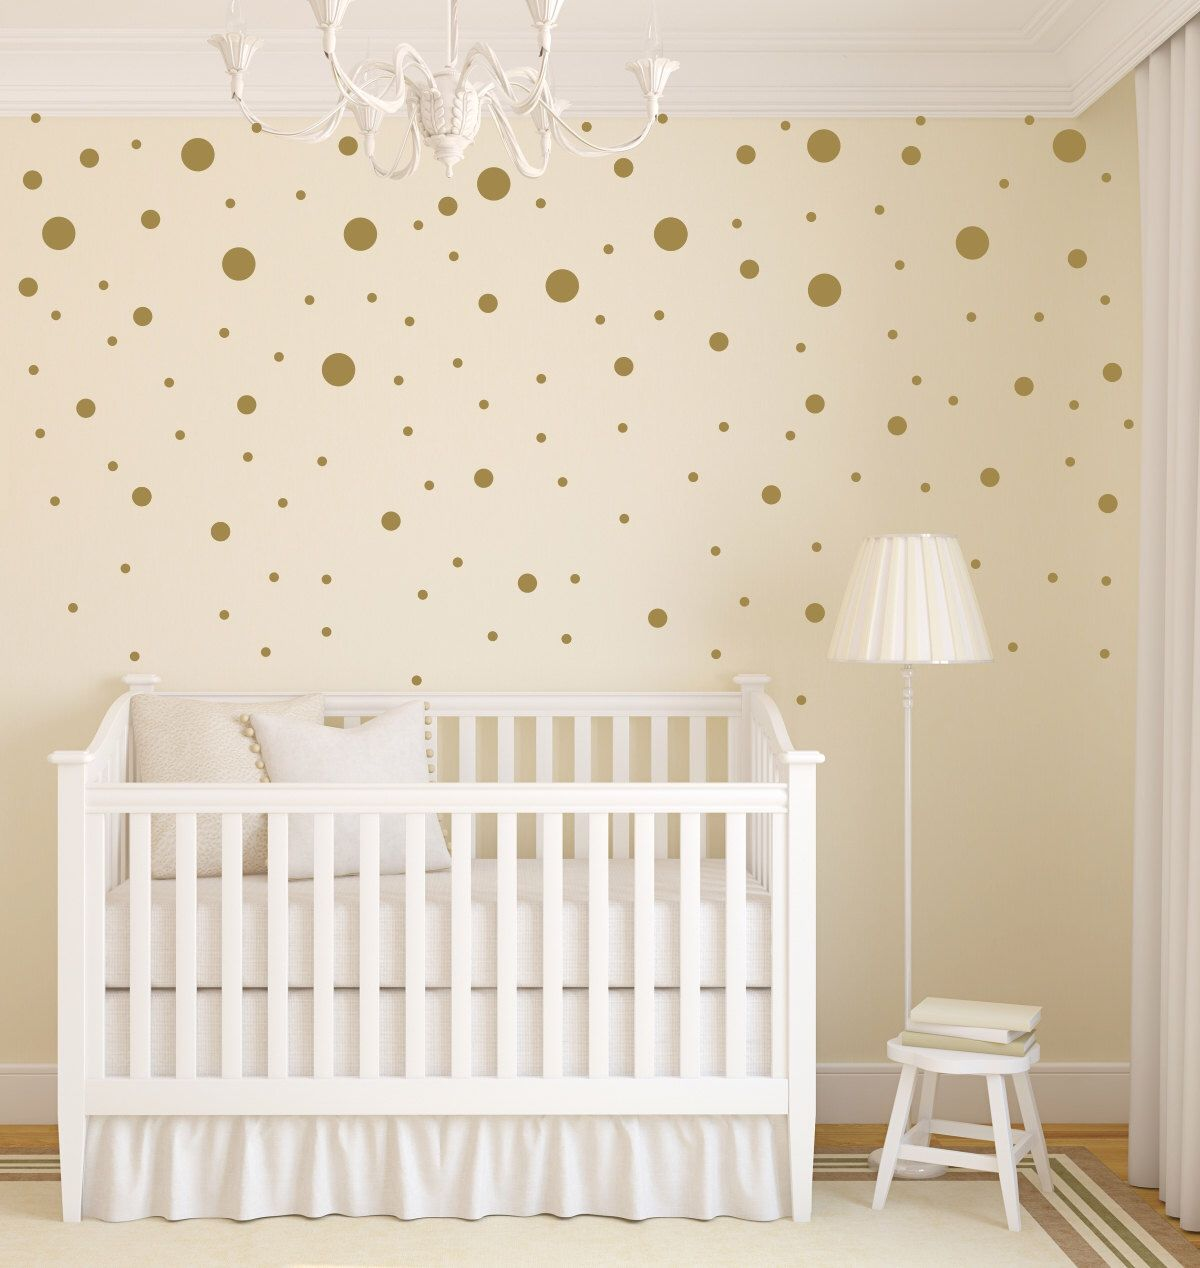 Pin By Jenn Harper On Baby Pinterest Gold Nursery Decor Gold